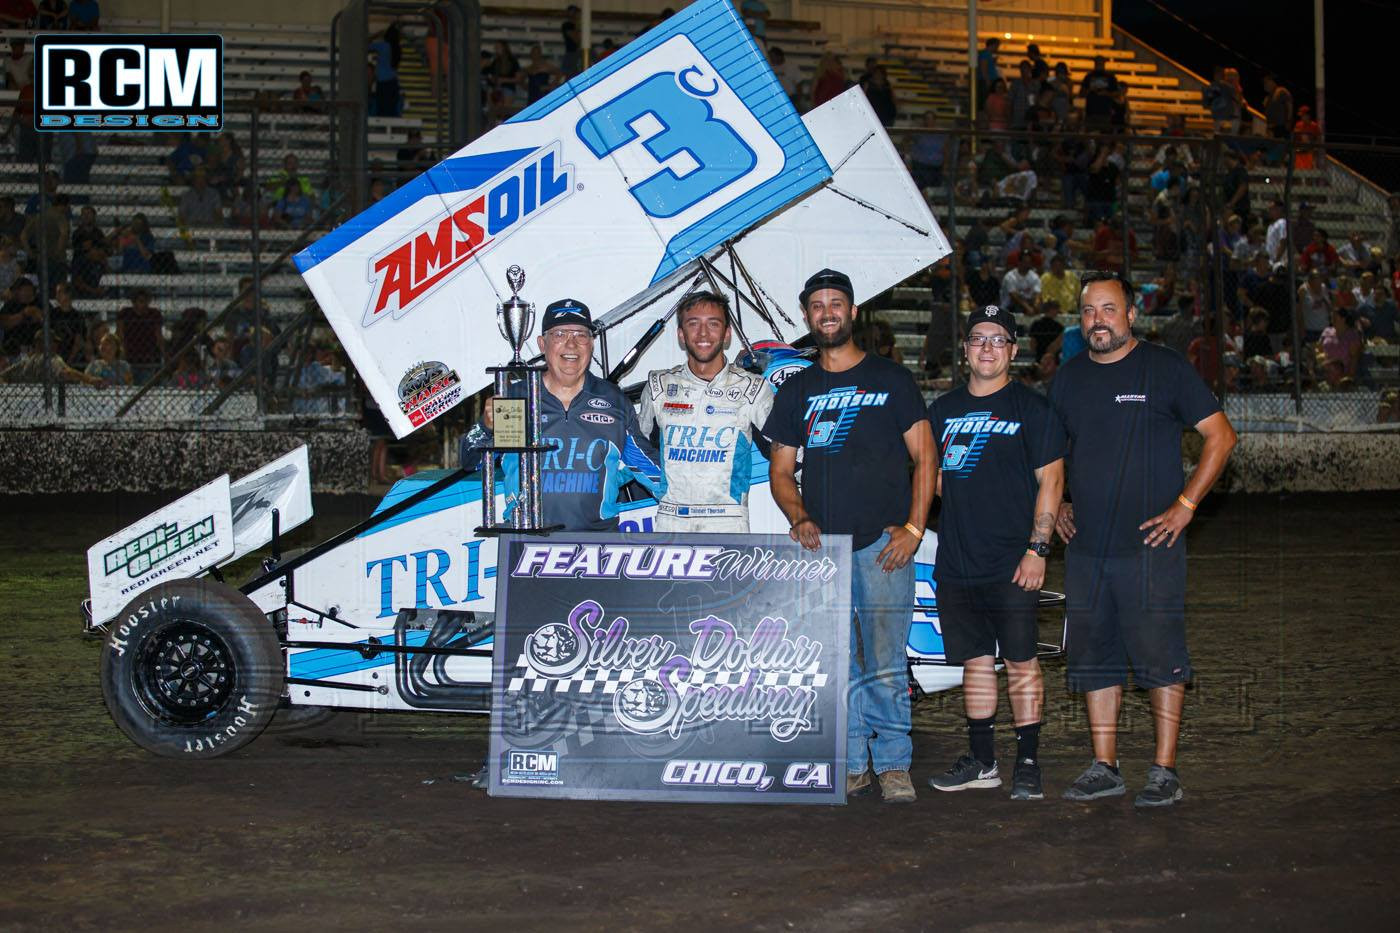 Sprint Car - 3C team victory lane .jpg